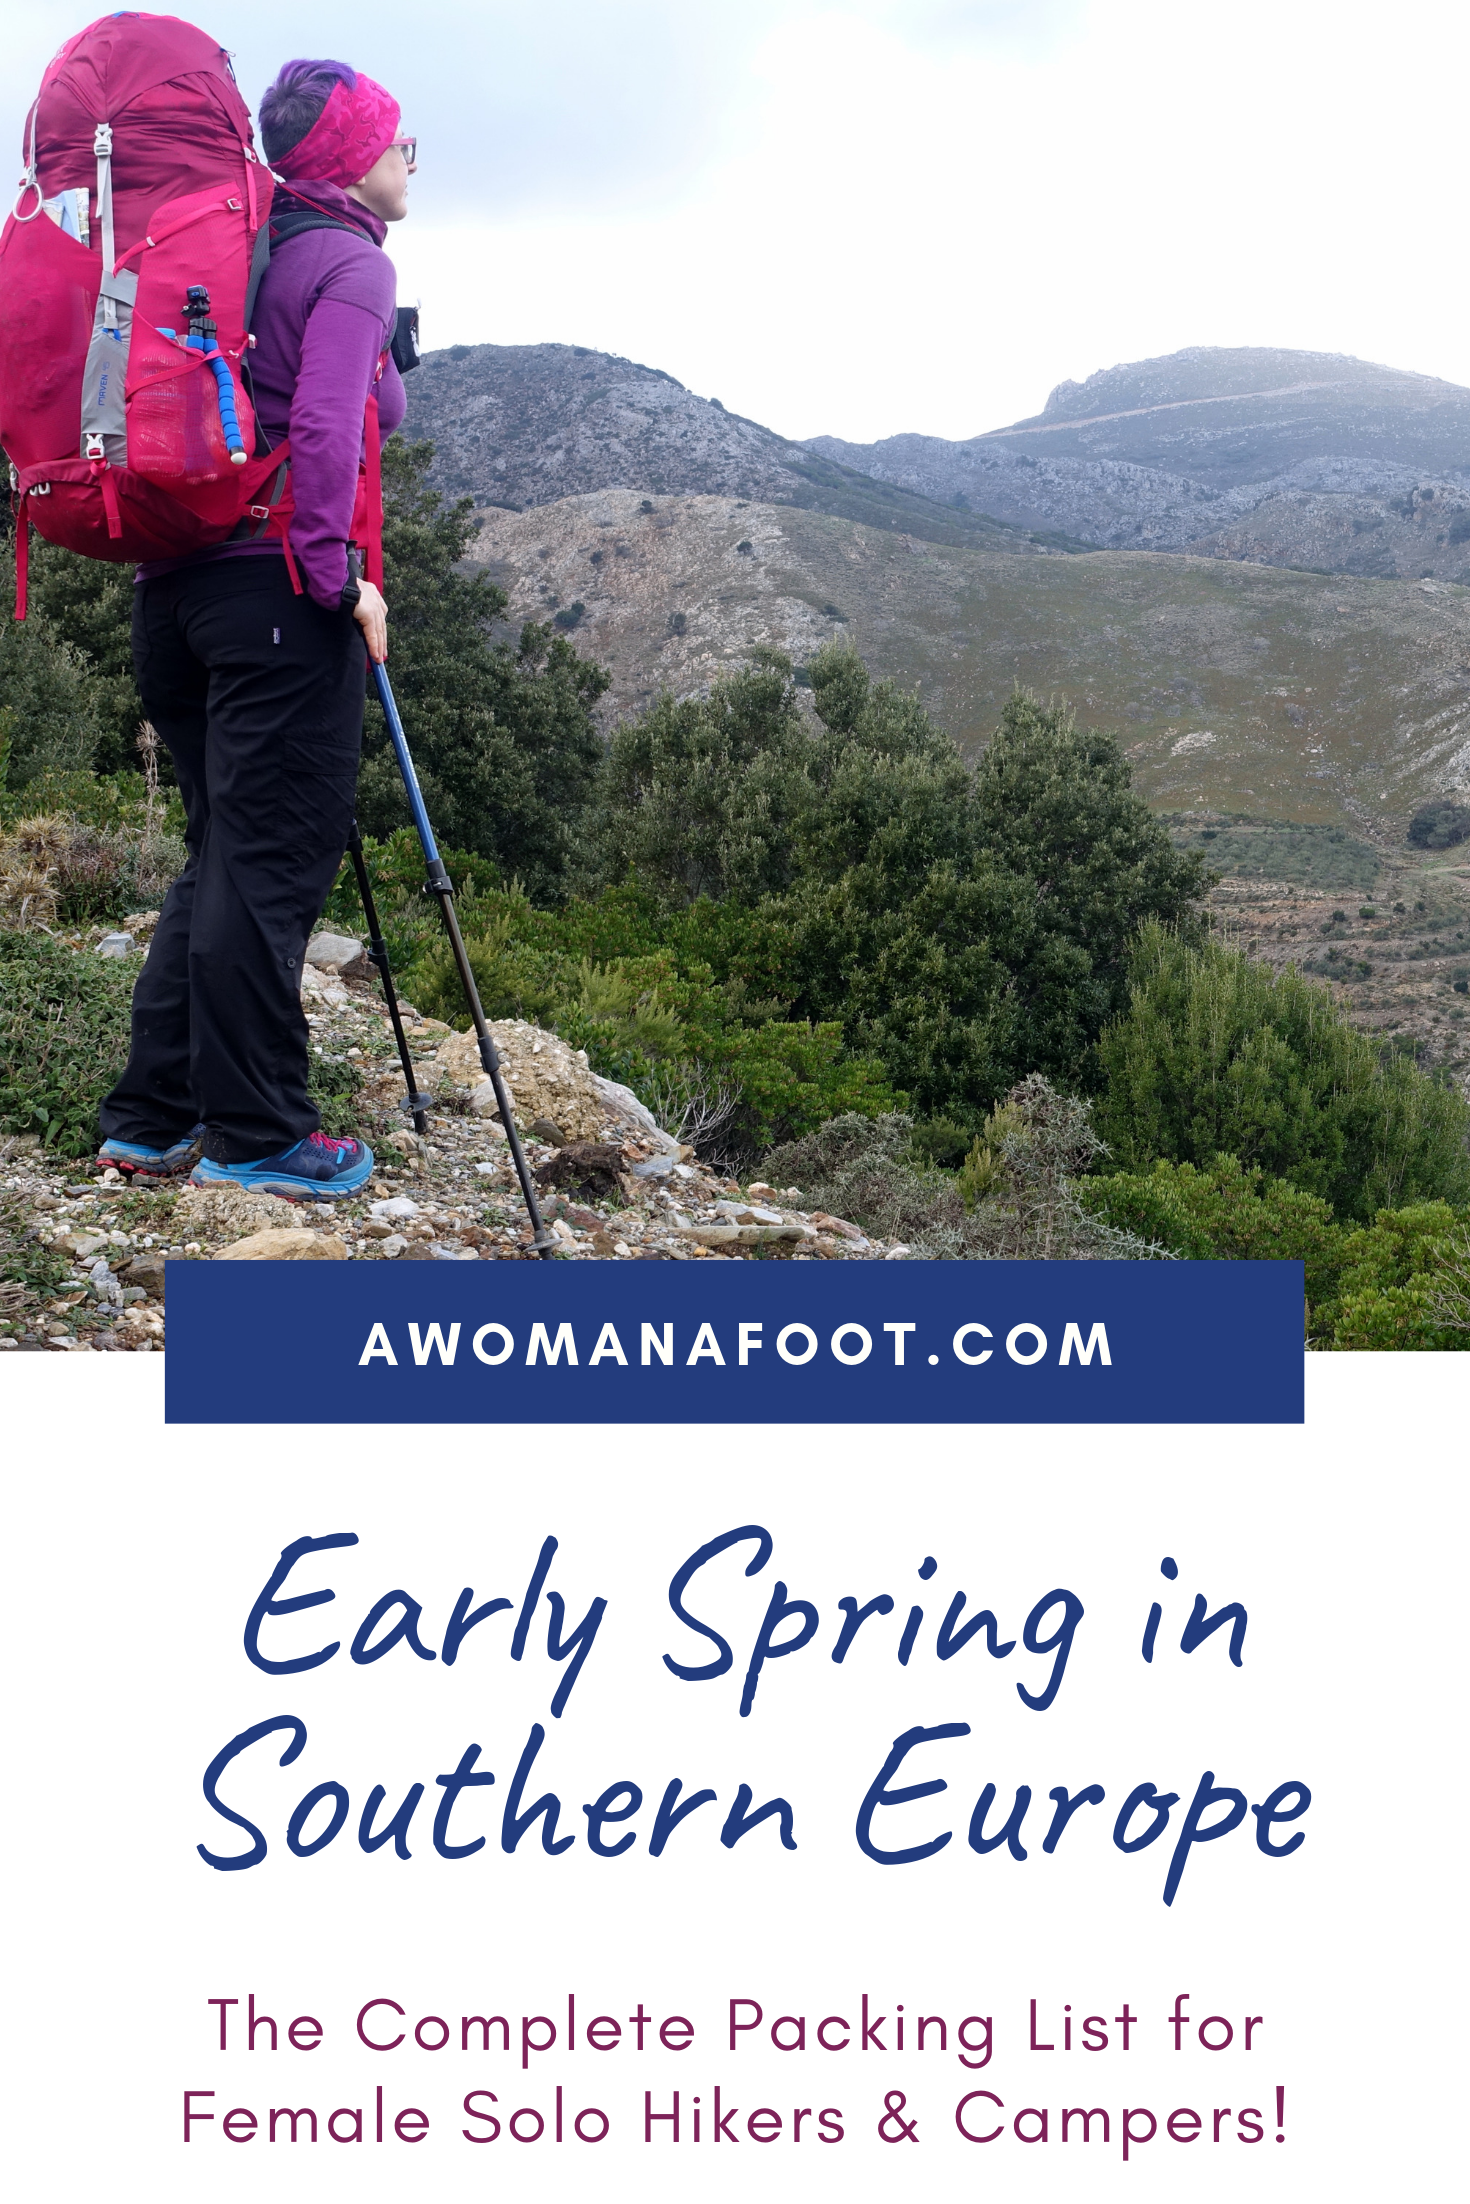 Do you plan a hiking trip to Spain, Portugal or Greece in early Spring? Make sure you are ready for the weather with this packing list! @Awomanafoot.com! | Female solo hikers | Hiking Camping Gear and Clothing | Gear for Hiking Women | Winter and Spring in southern Europe | European destinations | #Hiking #Camping #PackingList #Europe #Winter #Spring #Spain #Portugal #Crete